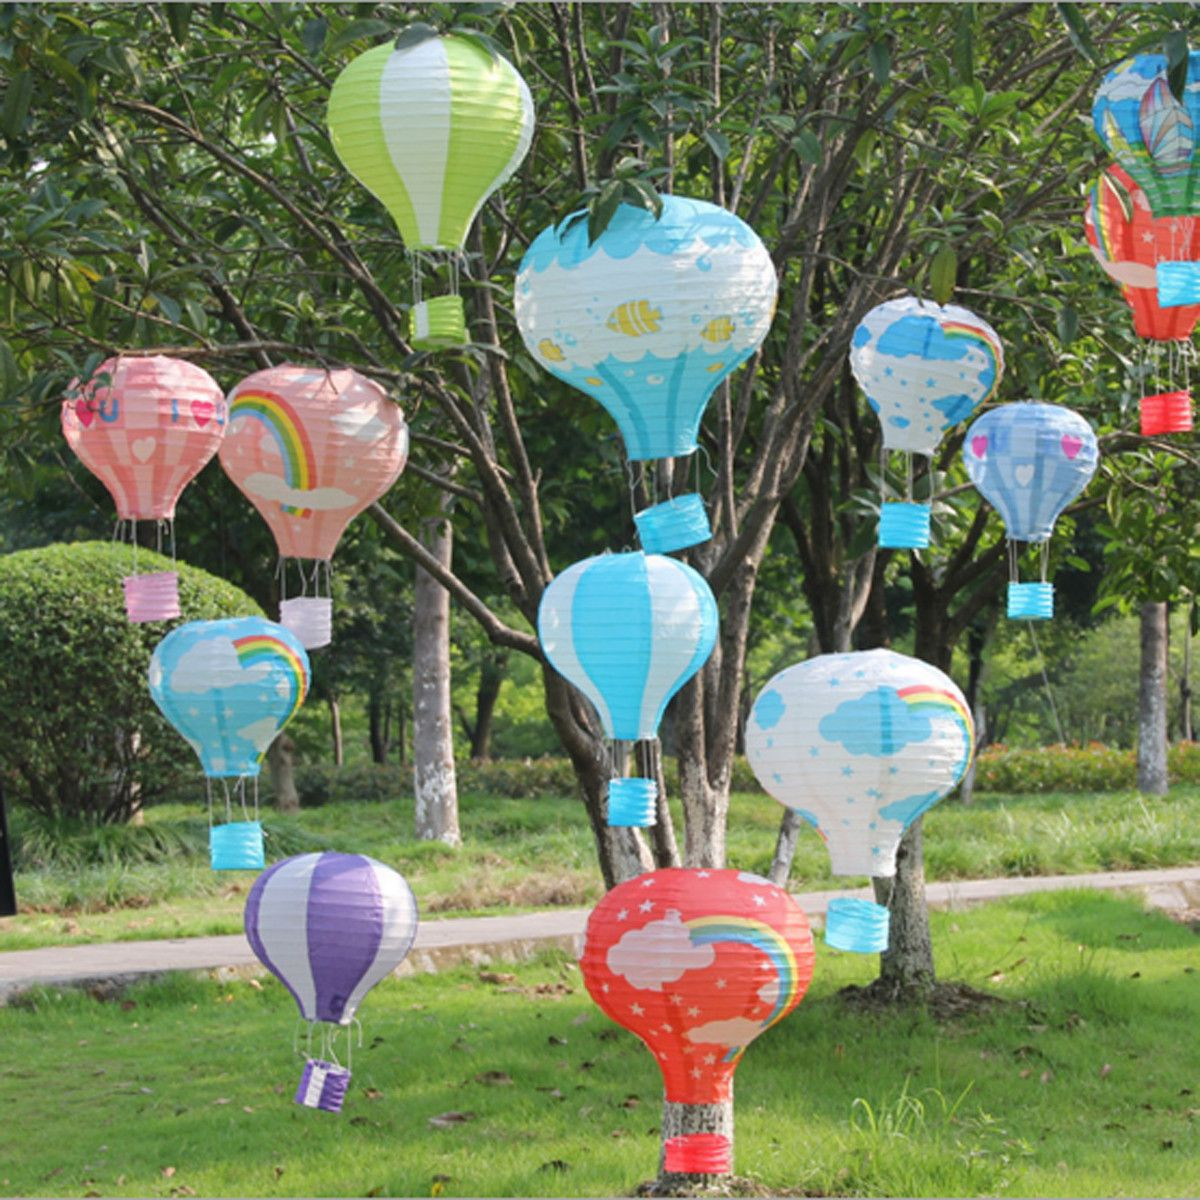 Paper lanterns wedding decoration ideas  Rainbow Hot Air Balloon Paper Lantern Home Birthday Christmas Party